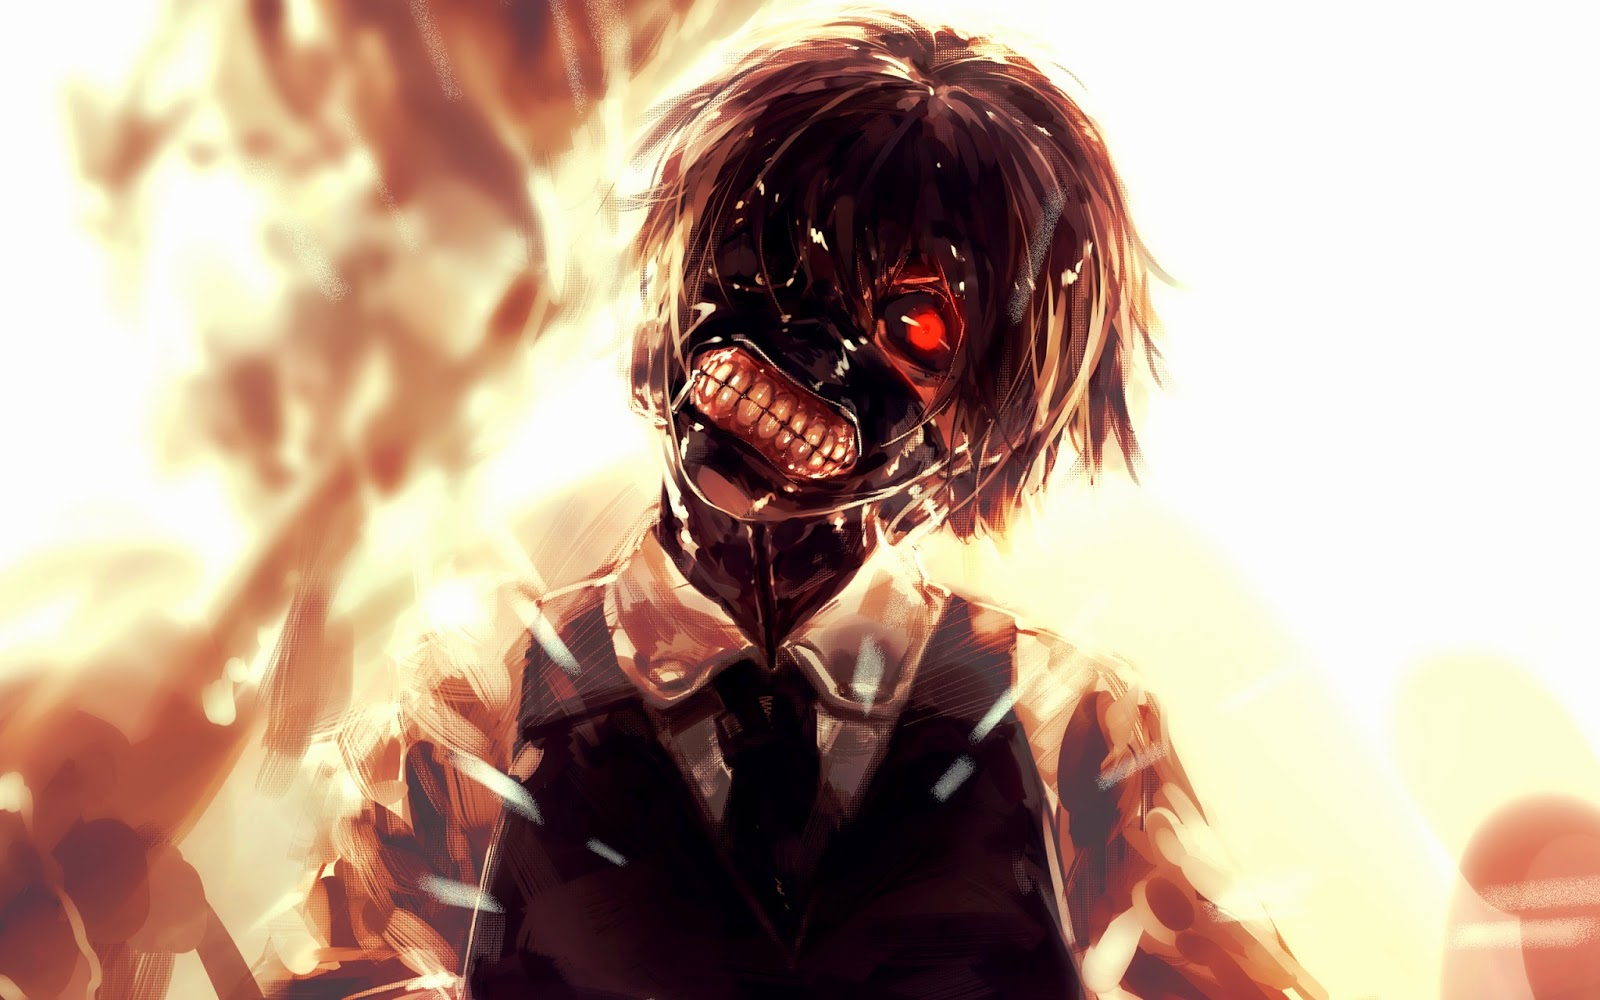 Dowload Walpaper Anime Tokyo Ghoul 2019: REVIEW 東京喰種-トーキョーグール